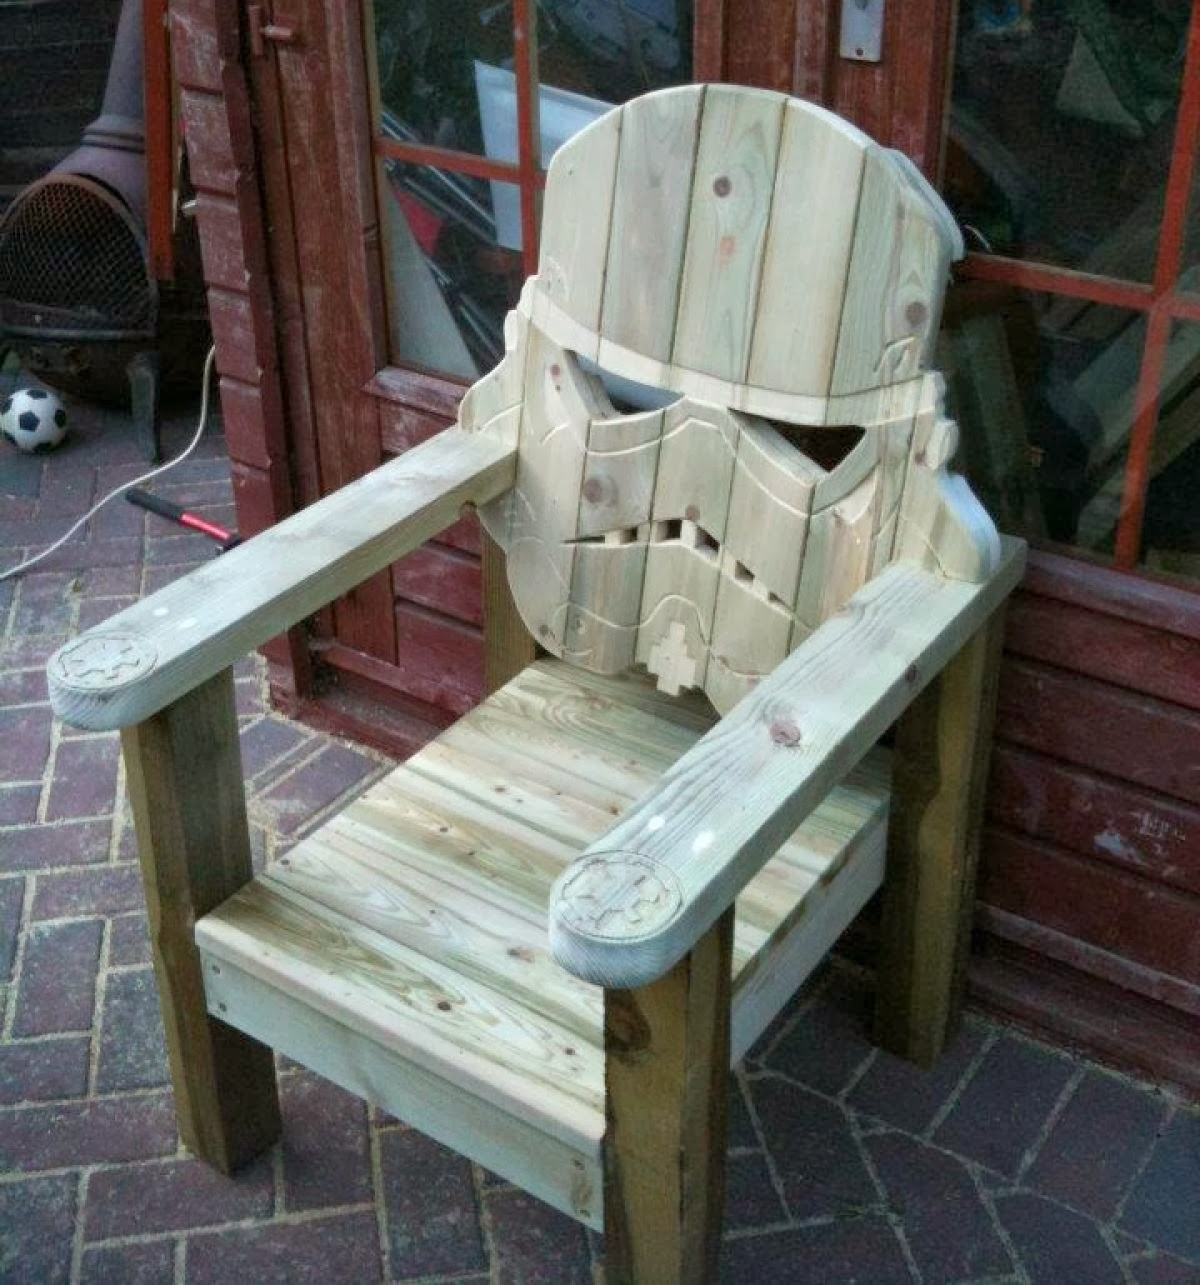 Wood Lawn Chair Better Posture I Have Seen The Whole Of Internet Star Wars Furniture